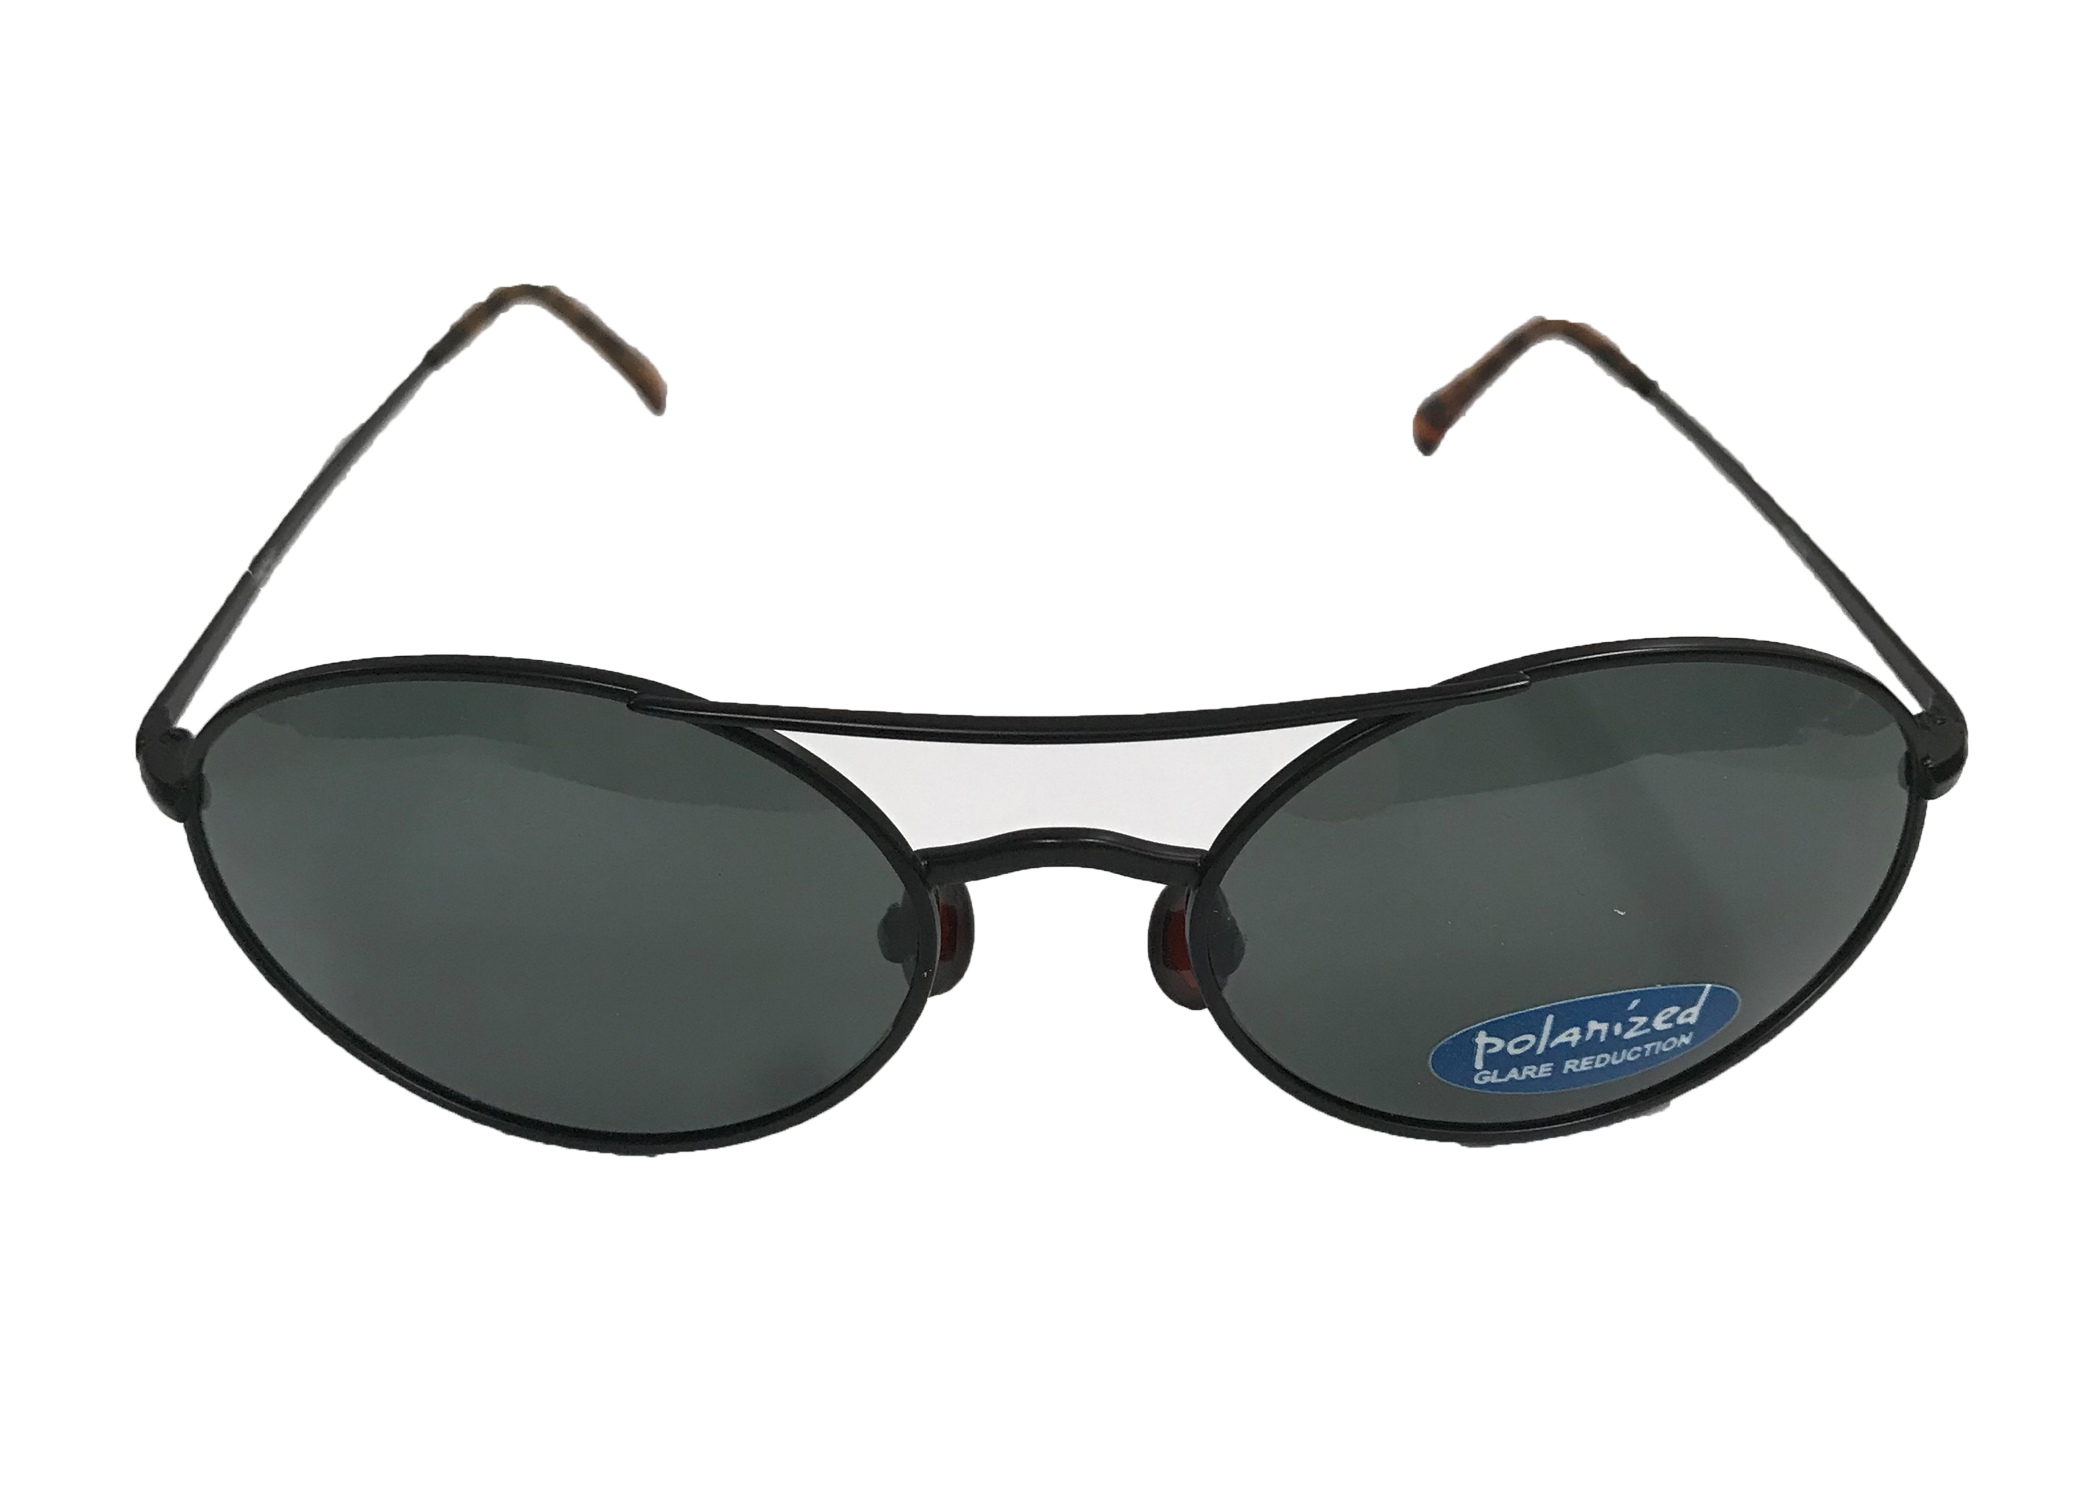 11311500 - Glare Stoppers Polarized Glasses to Reduce Glare